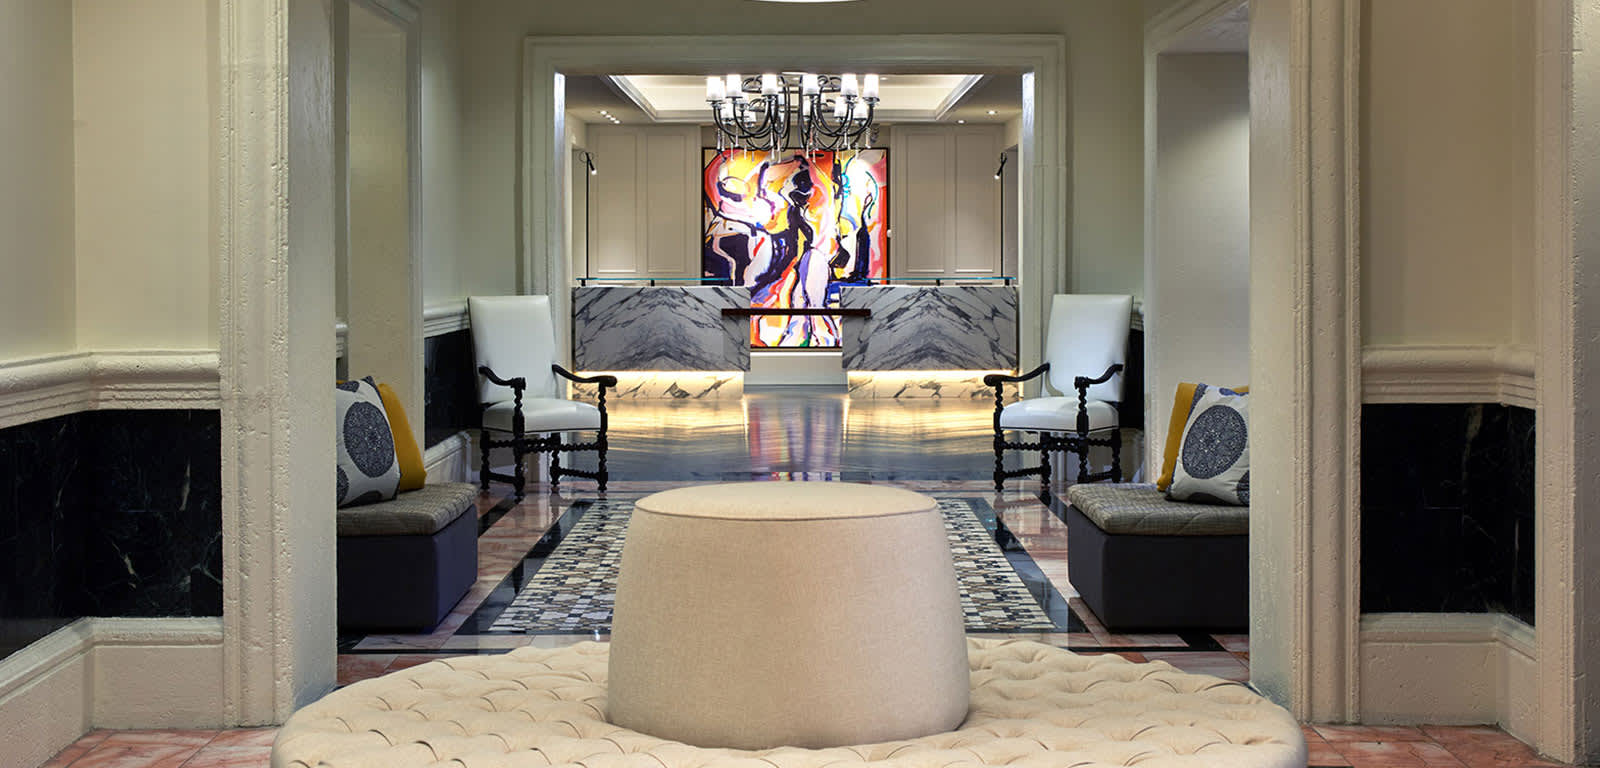 Interior Shot of Check-In Lobby at Hotel Colonnade